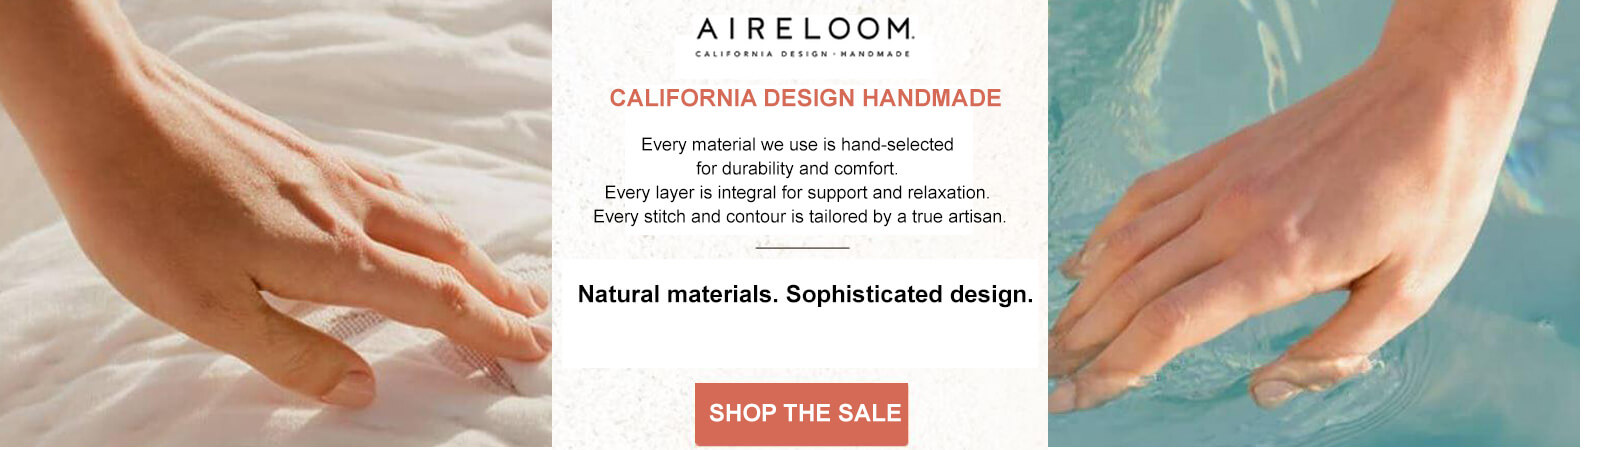 AIRELOOM CALIFORNIA DESIGN HANDMADE